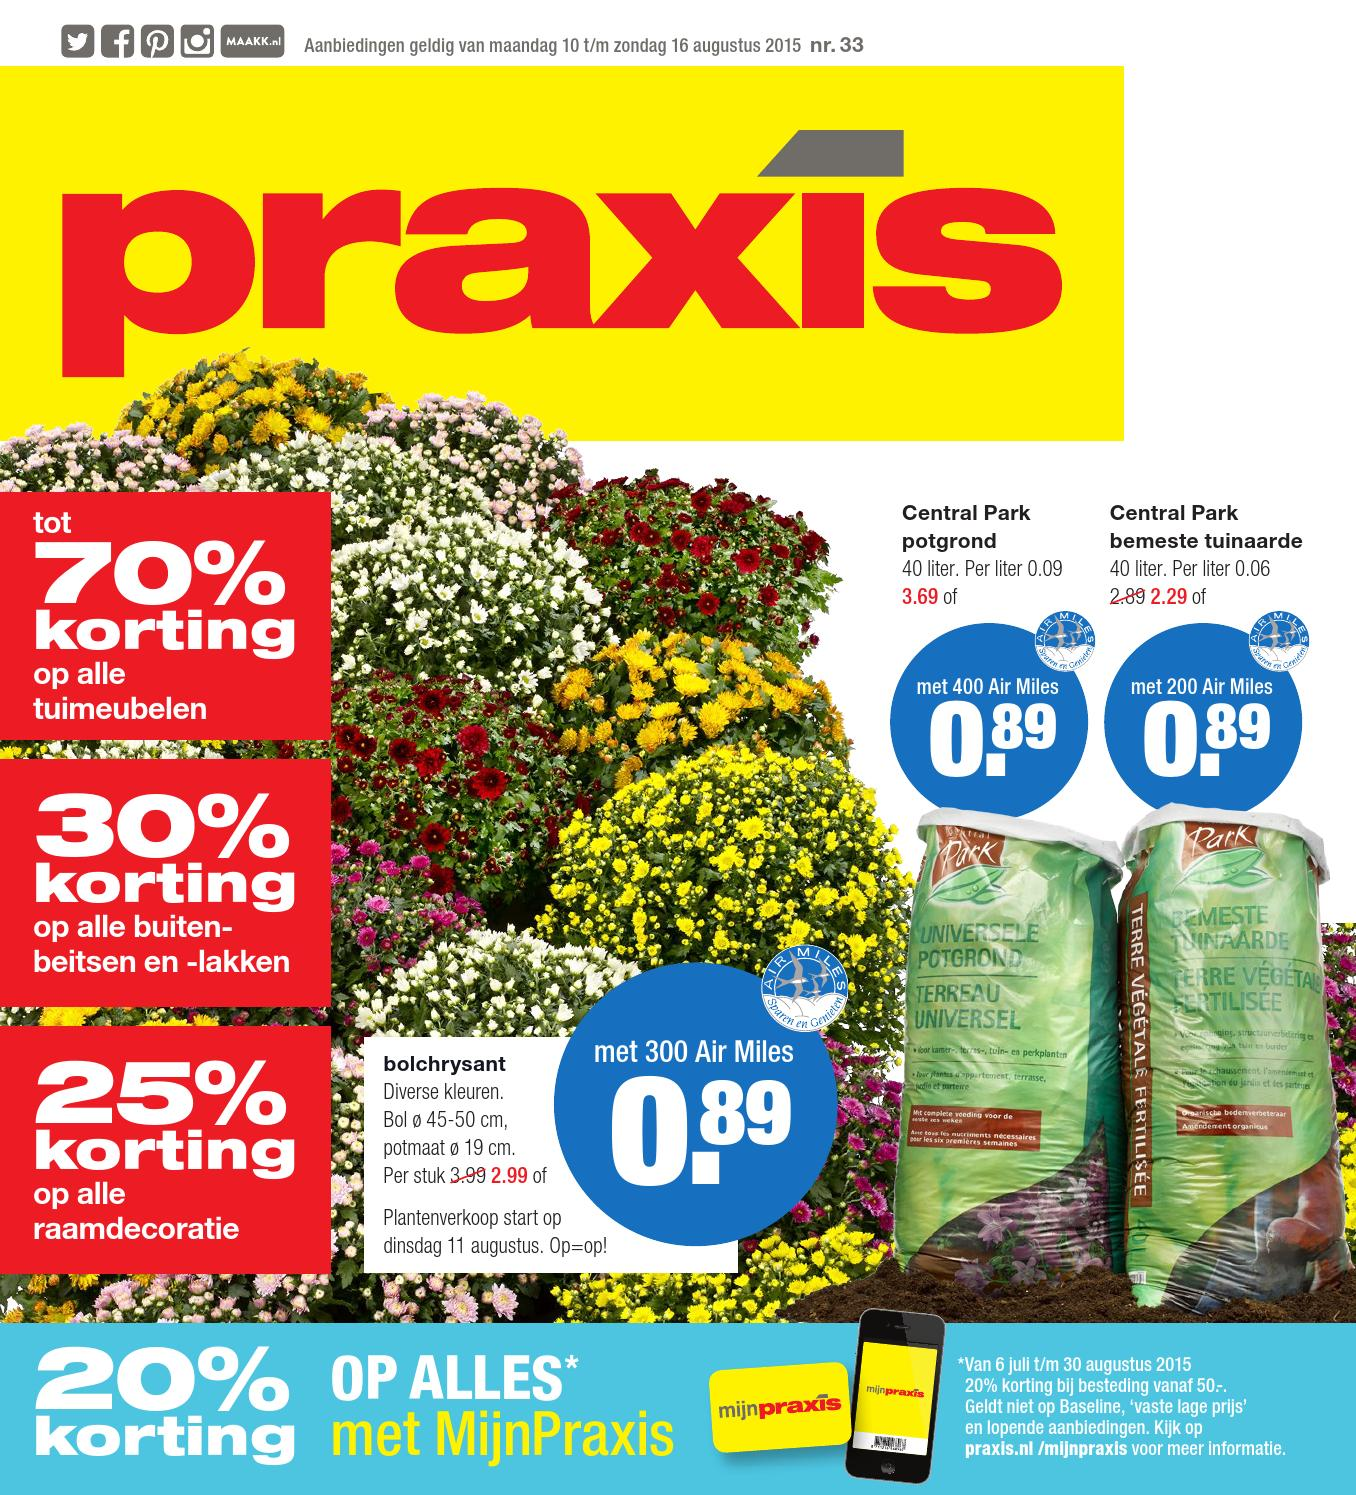 Flexa Strak In De Lak Aanbieding Praxis Praxis Folder Week 33 2015